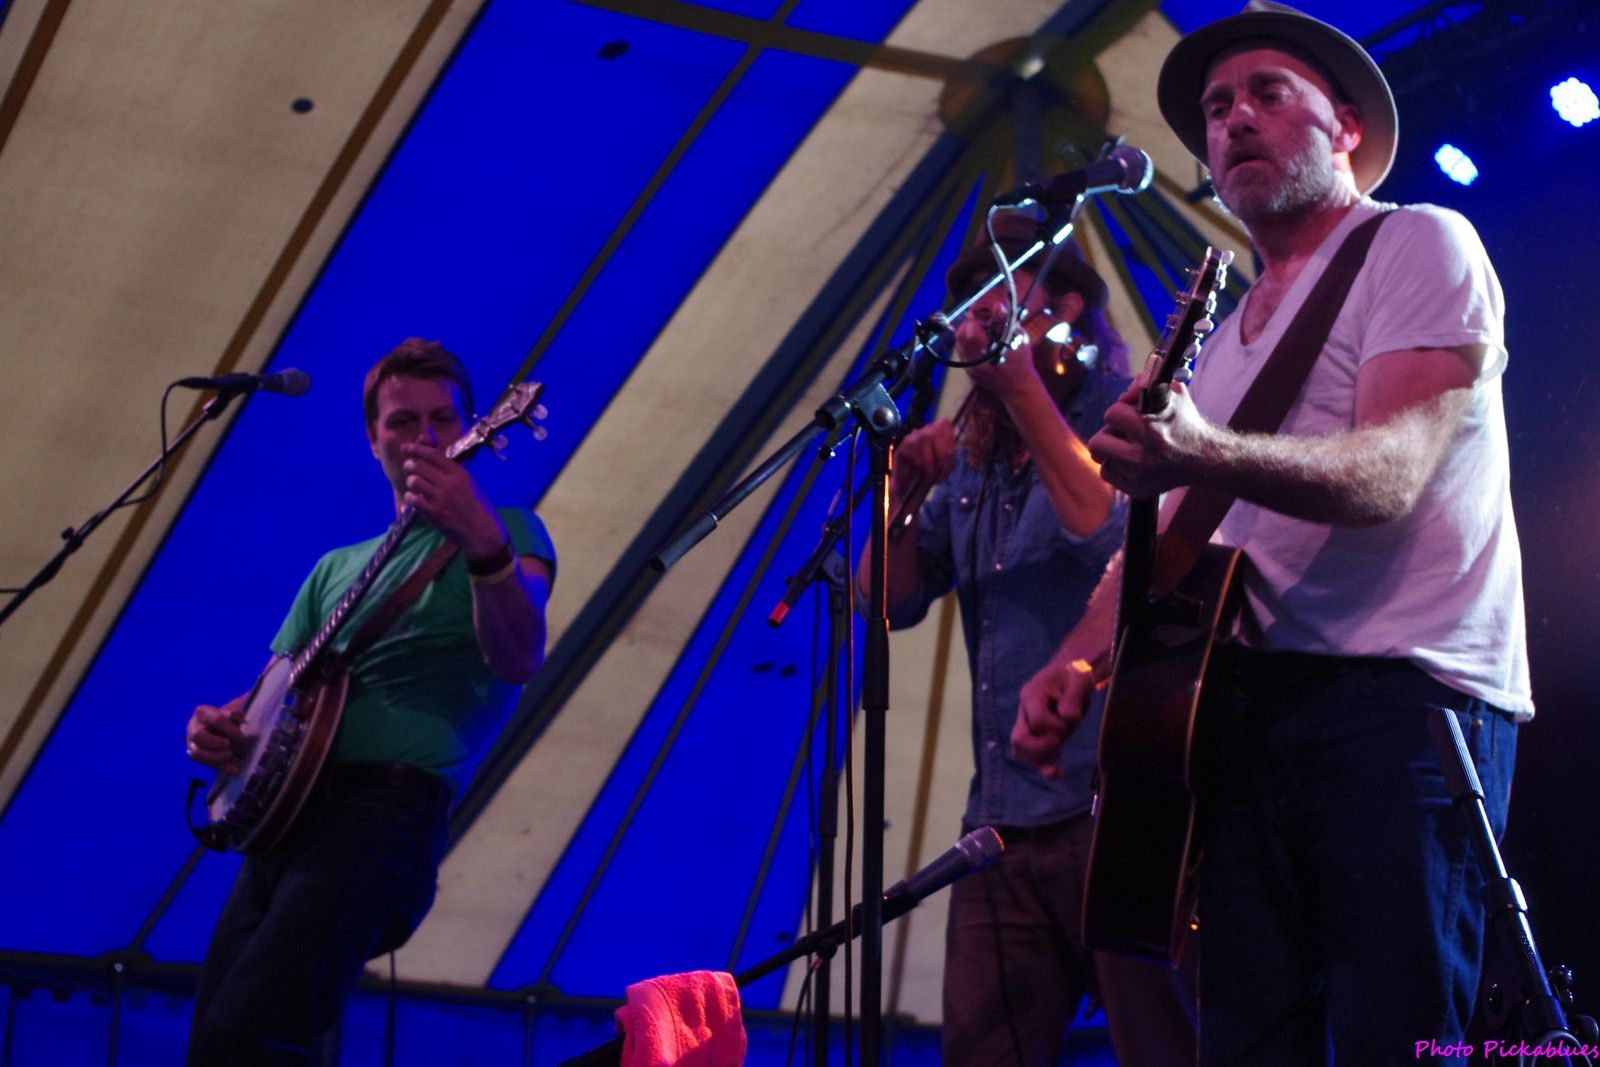 The Hackensaw Boys - 1 mai 2015 - Roots & Roses Festival, Lessines (B)